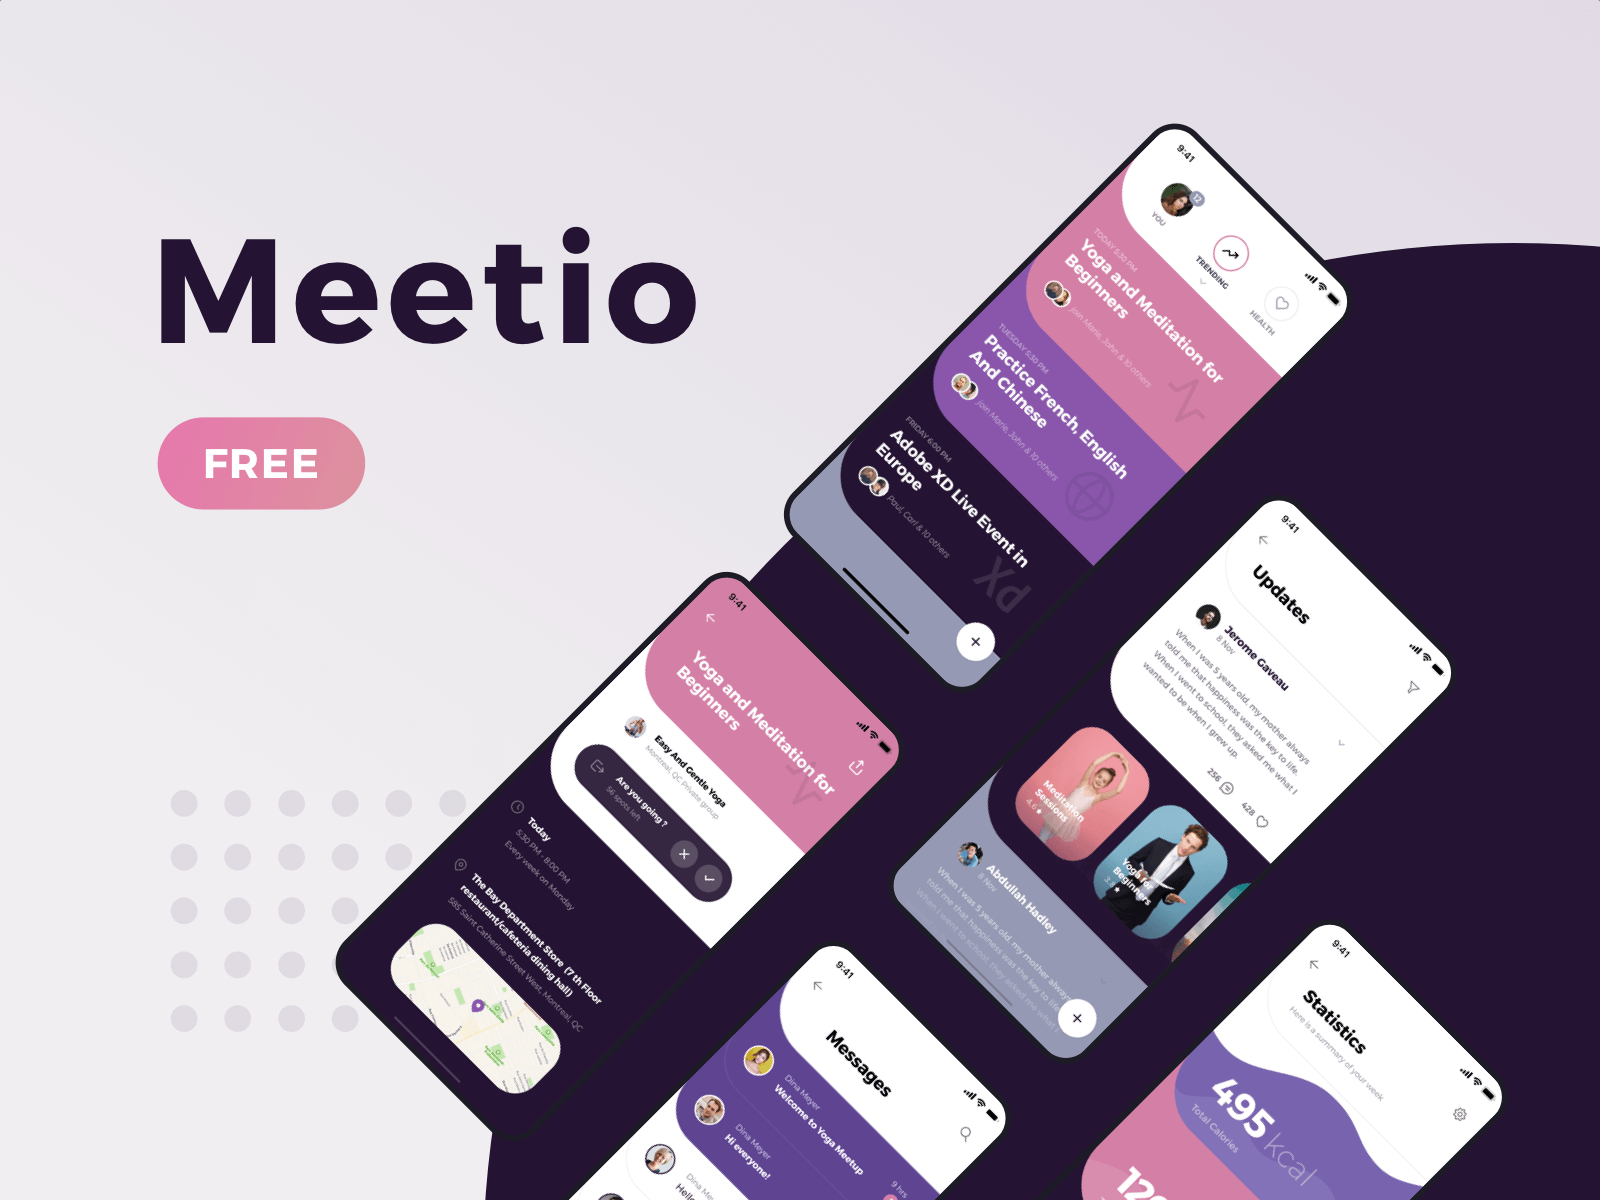 App screens for a new UI Kit